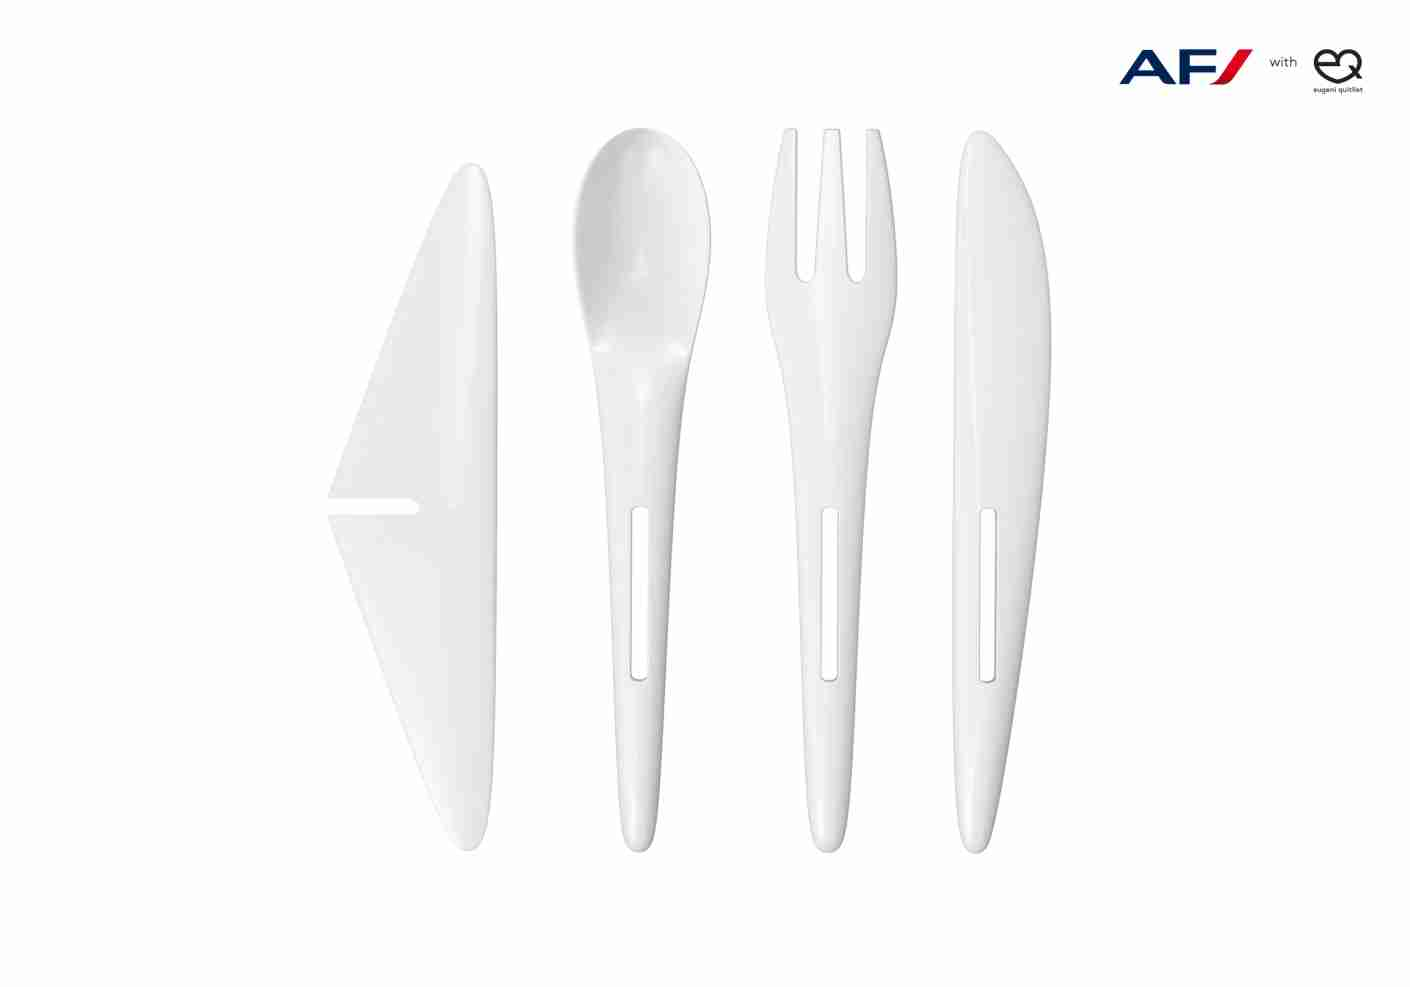 Quitllet designed silverware that, in addition to being lighter, can be turned into toy airplanes. Image courtesy of Eugeni Quitllet.